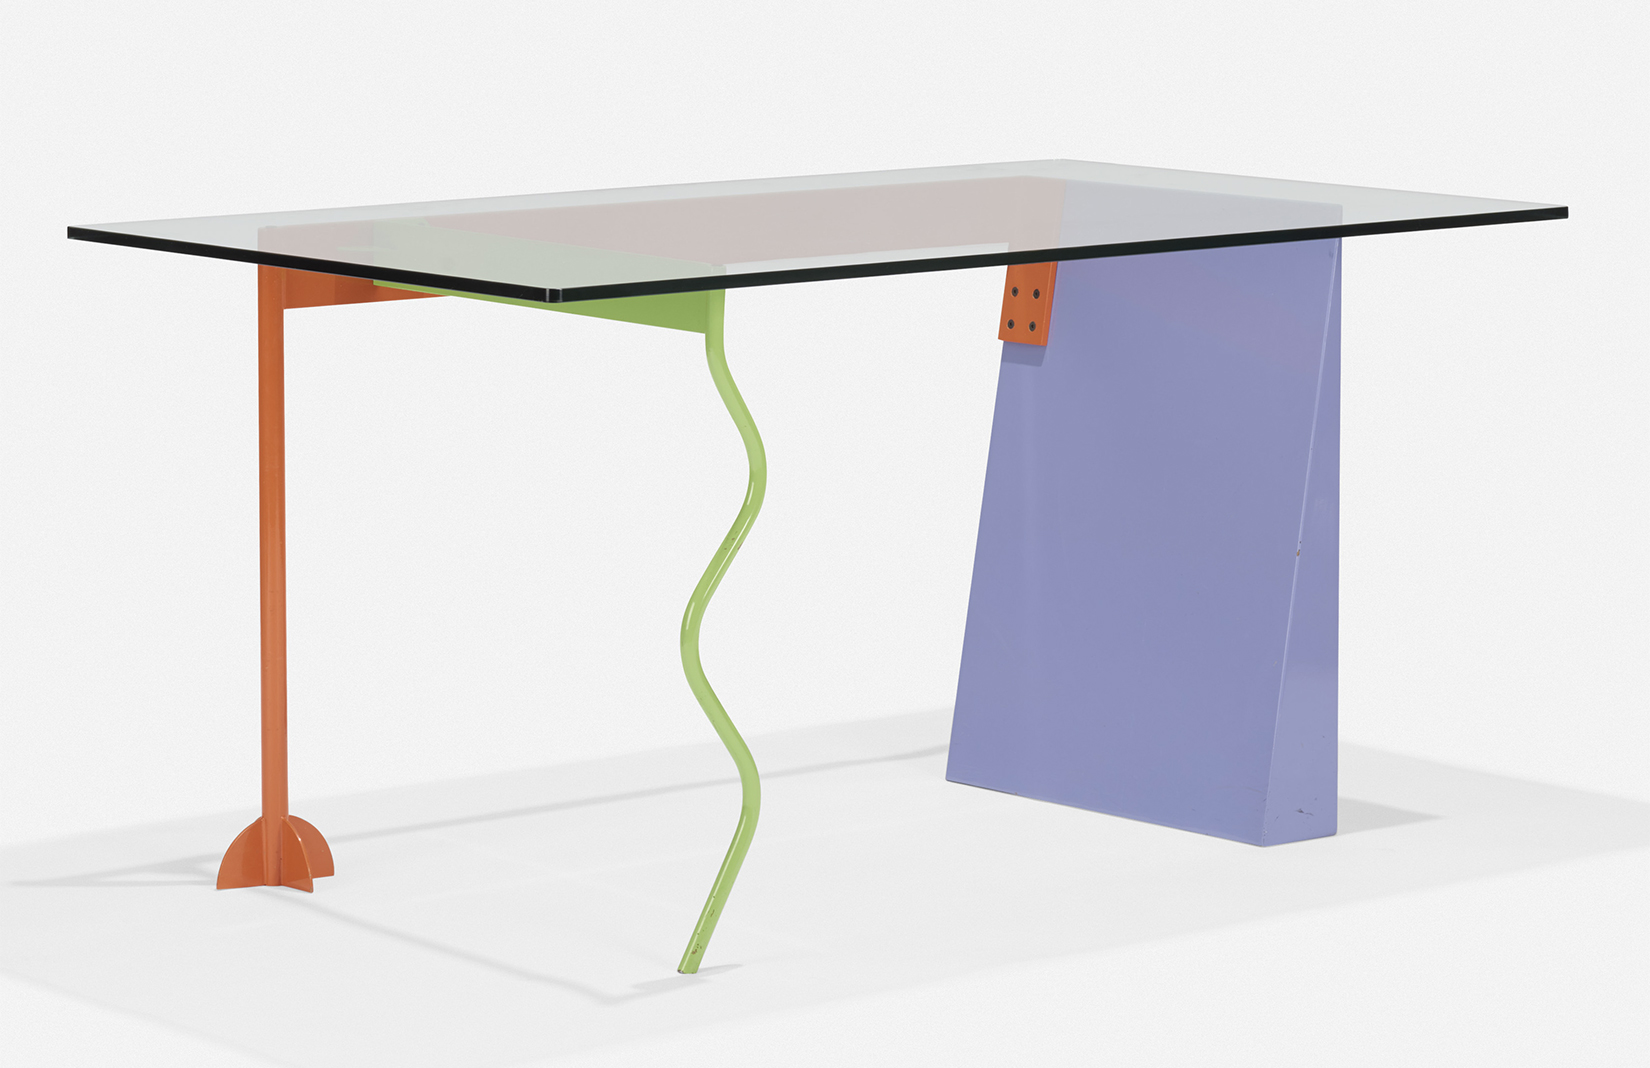 Lot 116. Peninsula table by Peter Shire, estimate: $2,000–3,000